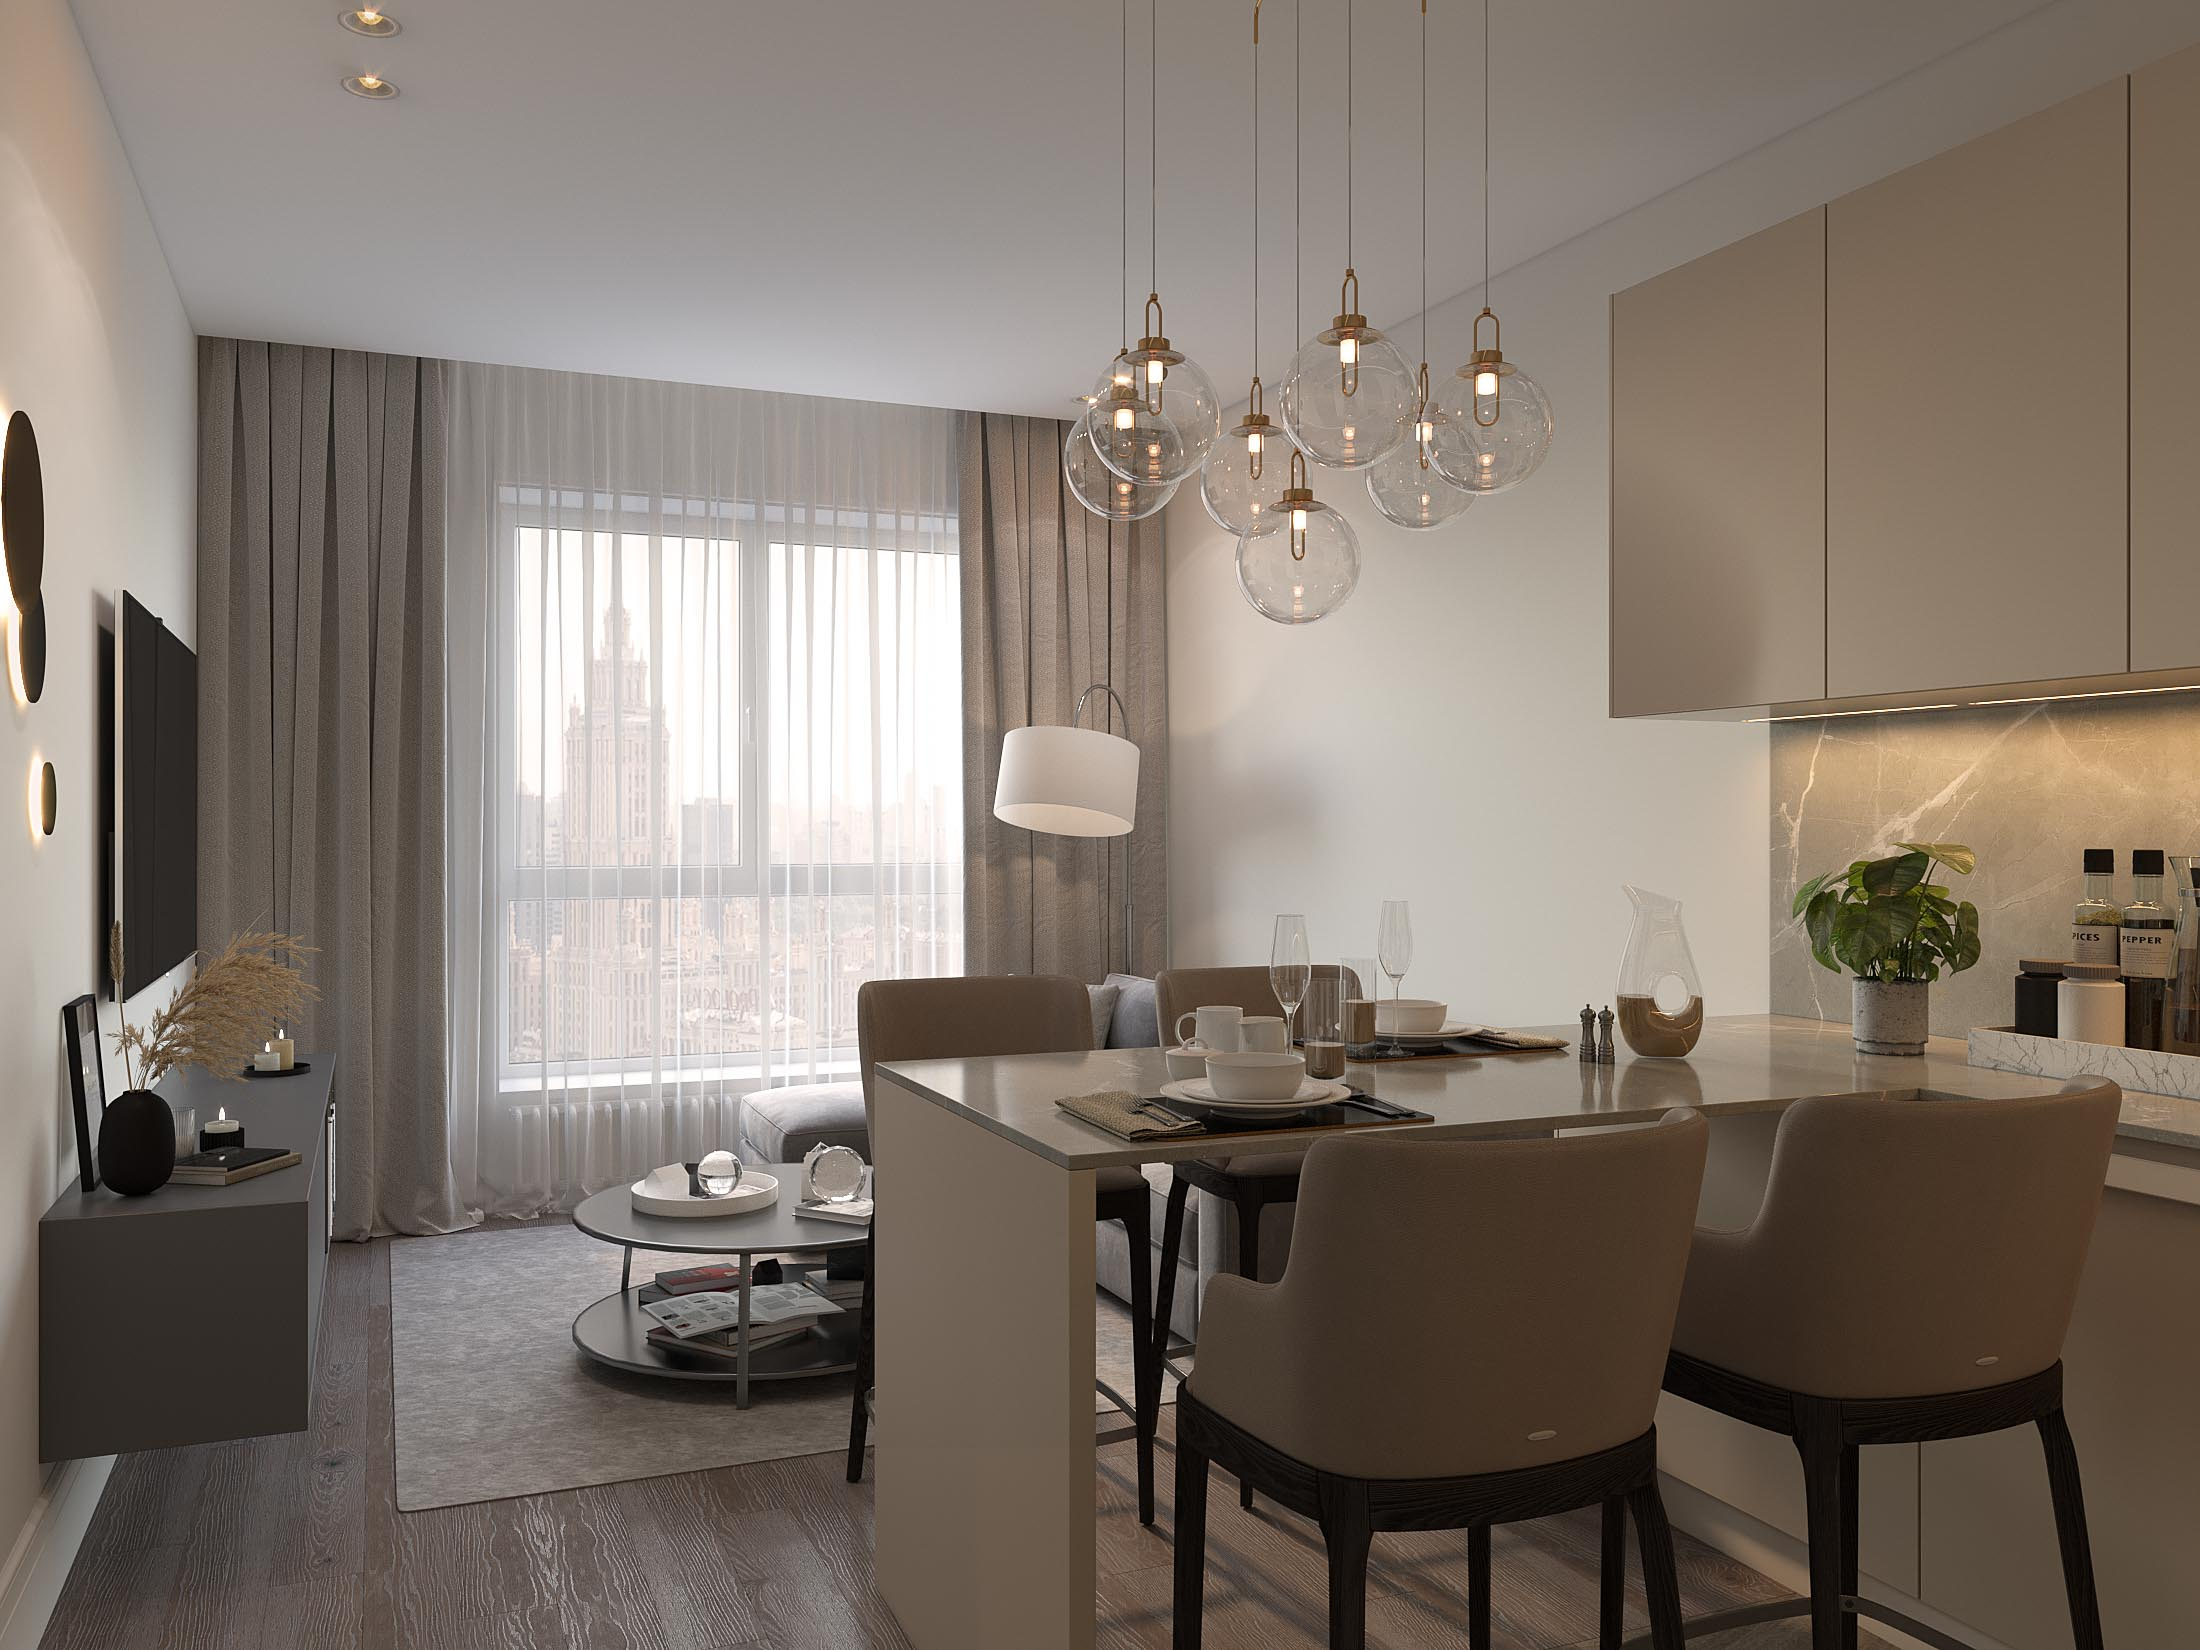 Option for kitchen and living room interior design by Lera Bykova